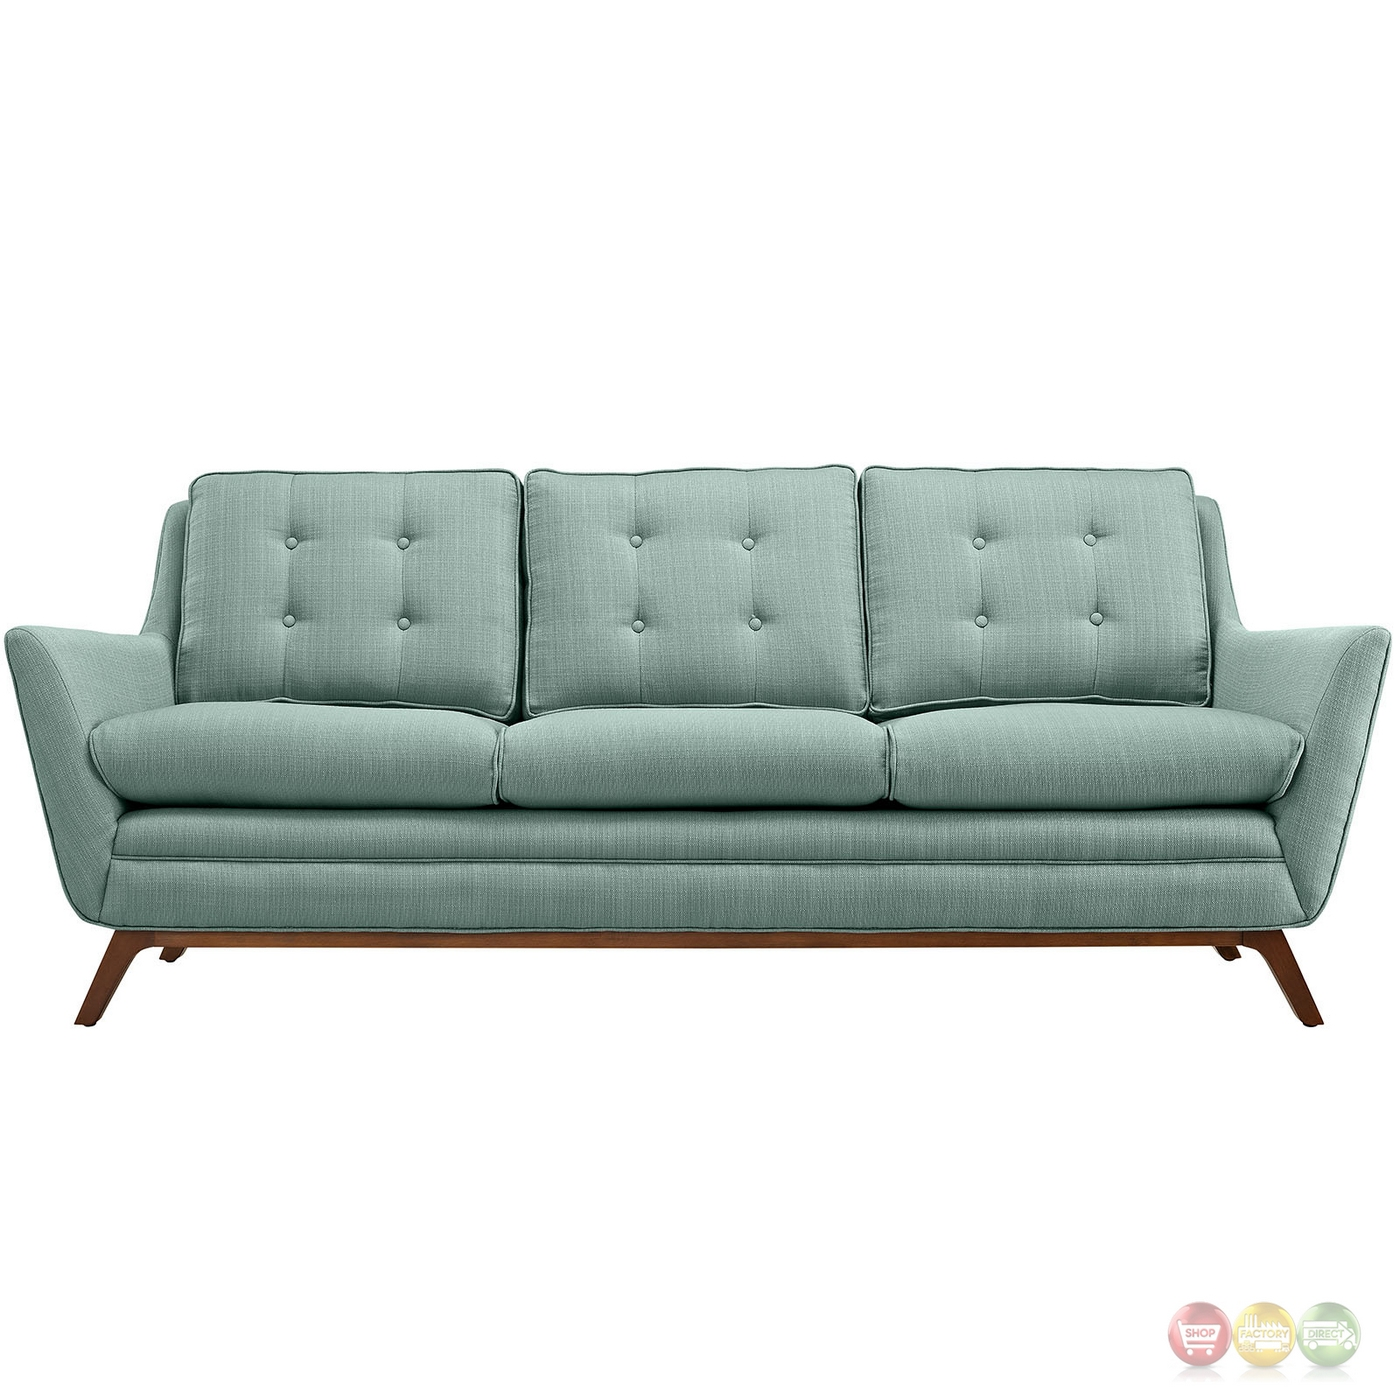 Beguile Contemporary Button Tufted Upholstered Sofa Laguna